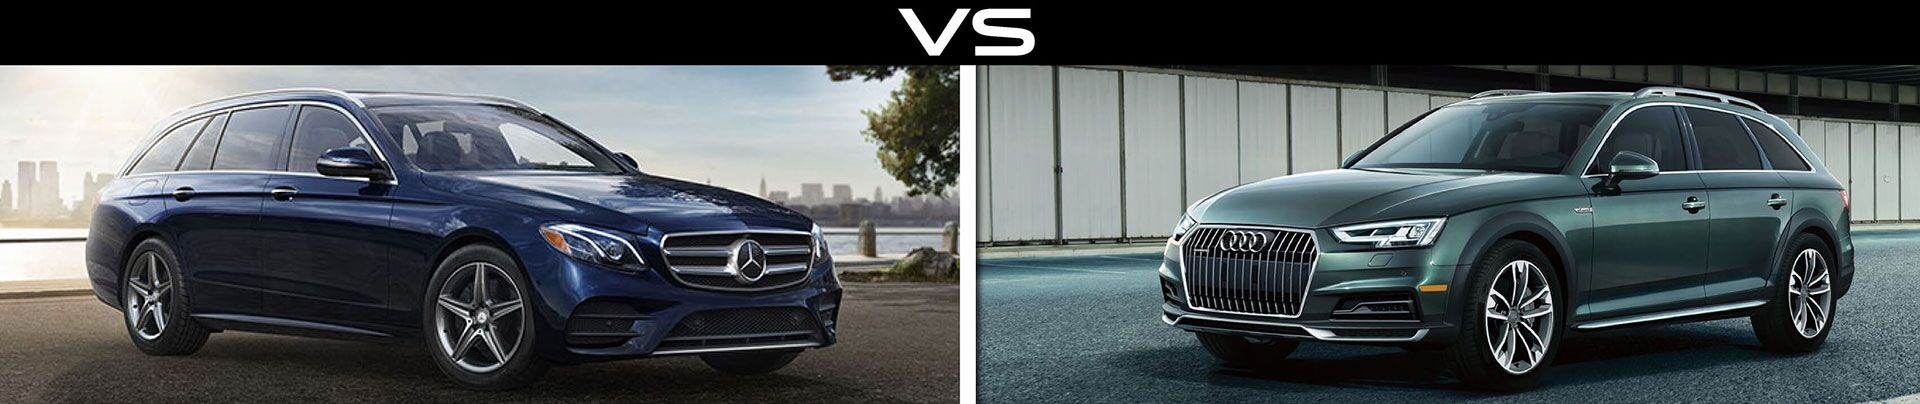 Jaguar XF Sportbrake vs Mercedes-Benz E400 vs Audi A4 Allroad